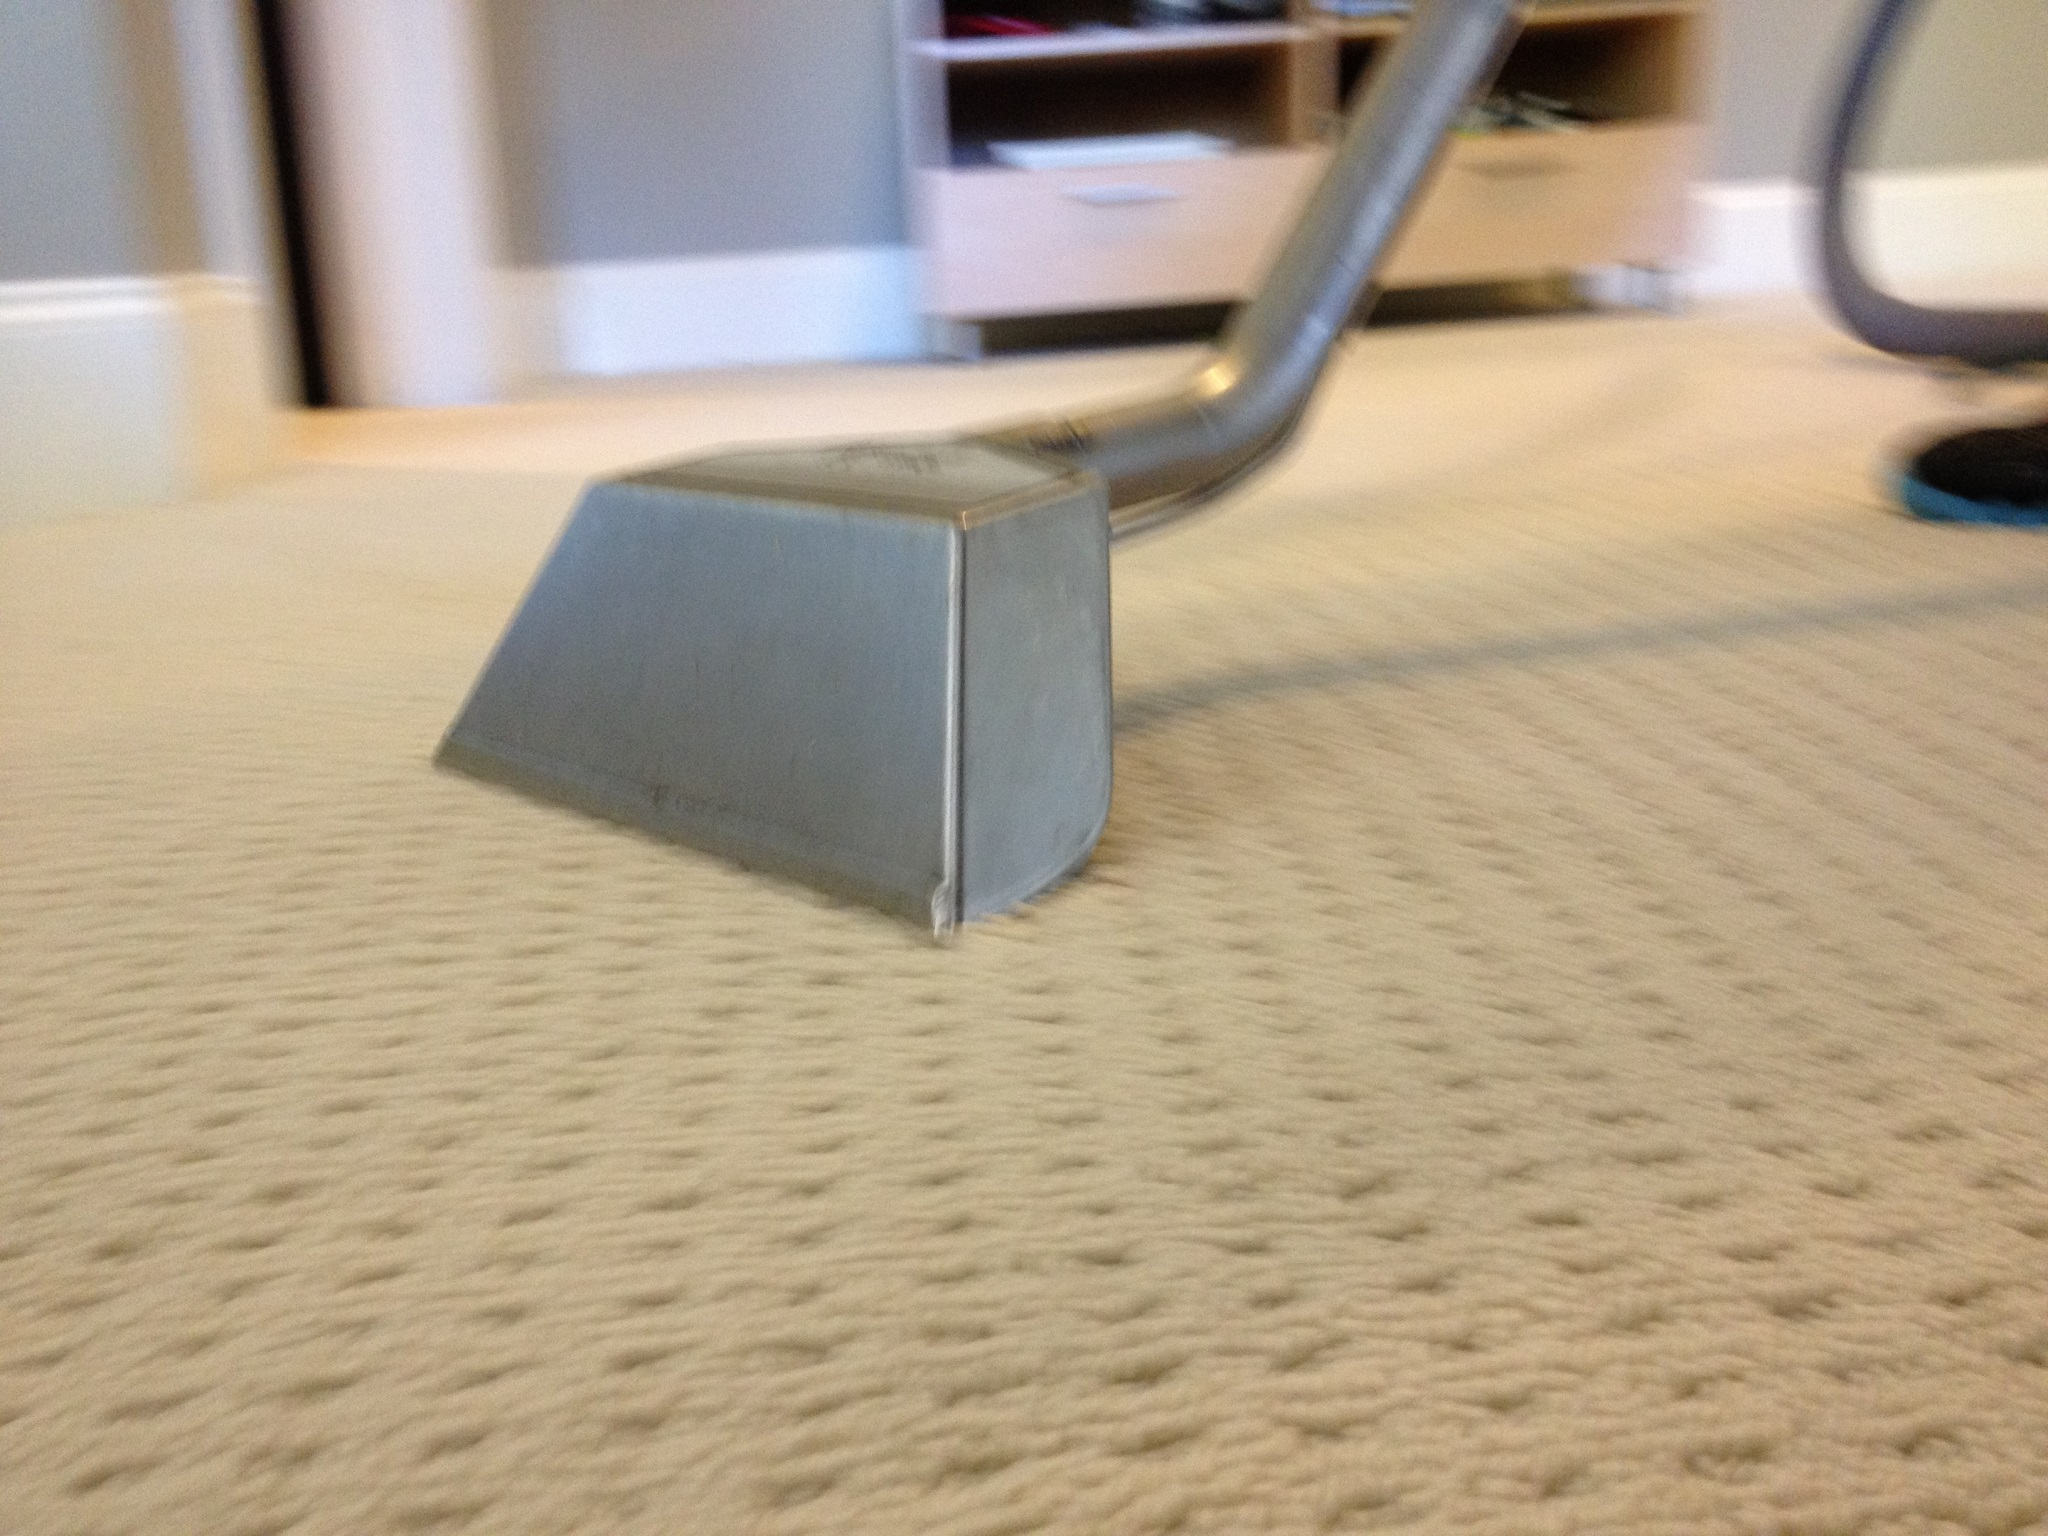 Easy Carpet Cleaning With Vacuum Cleaner (View 6 of 8)